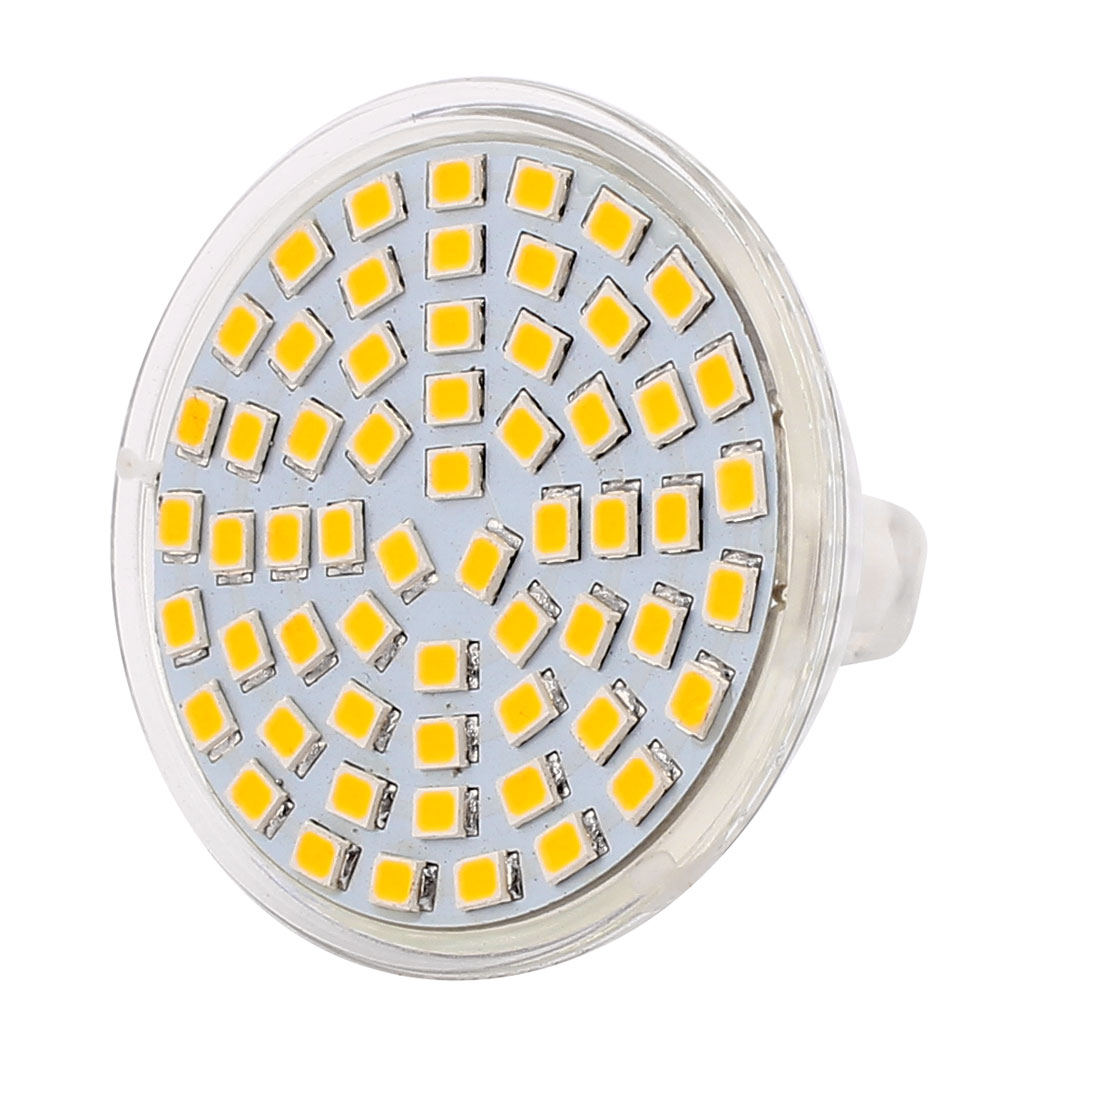 220V-240V 6W MR16 2835 SMD 60 LEDs LED Light Spotlight Down Lamp Lighting Warm White